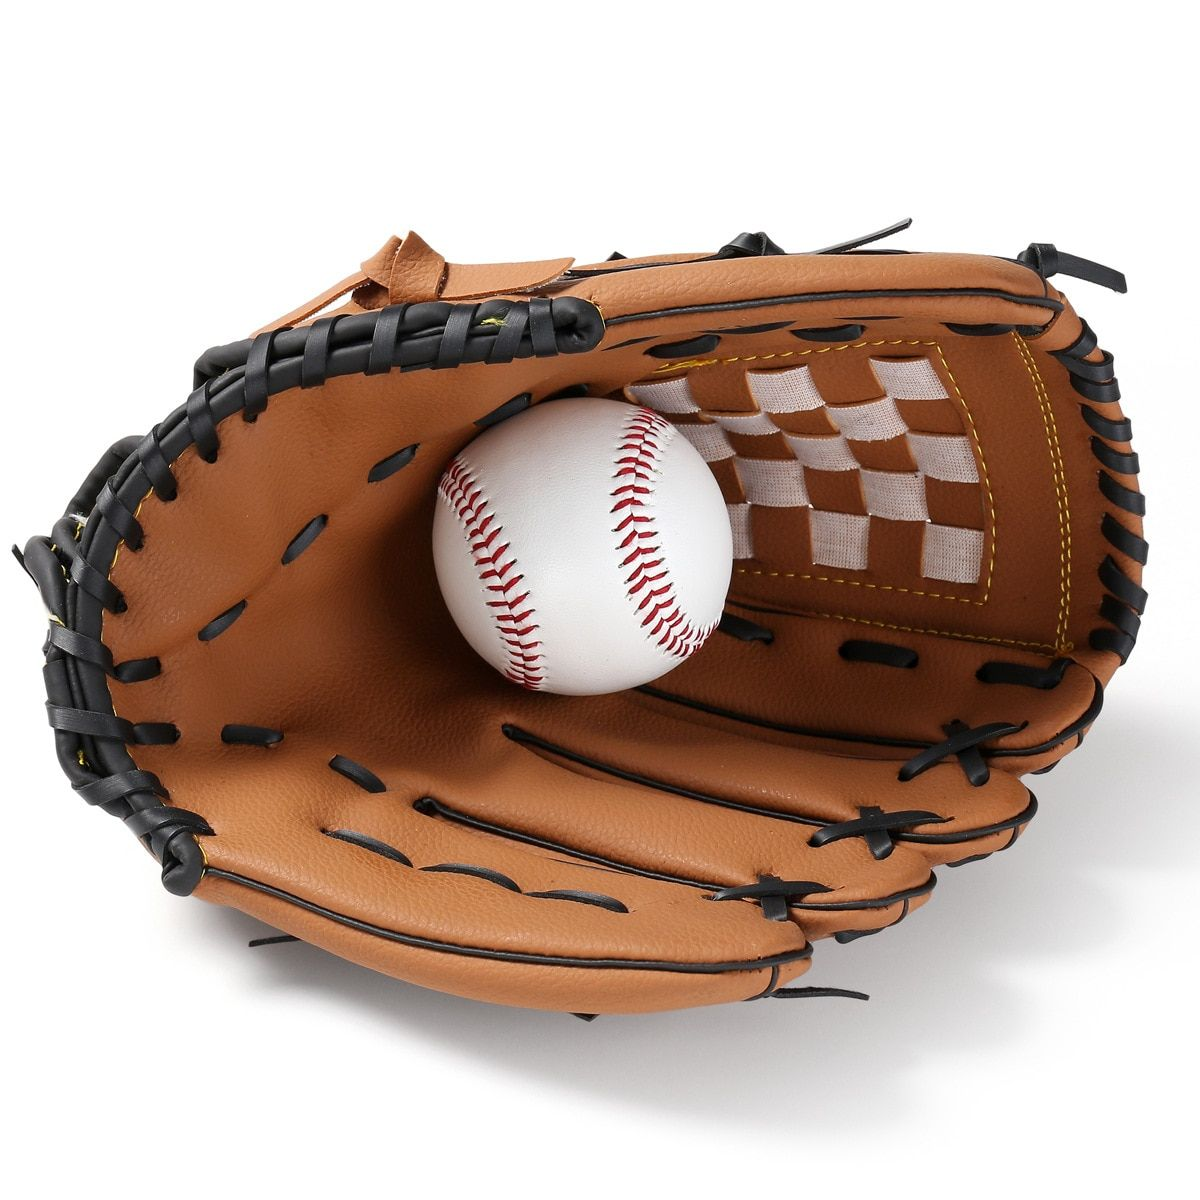 Usd 11 51 Outdoor Thickened Inner Field Pitcher S Baseball Glove Softball Glove Children And Adults In 2021 Softball Gloves Baseball Glove Softball